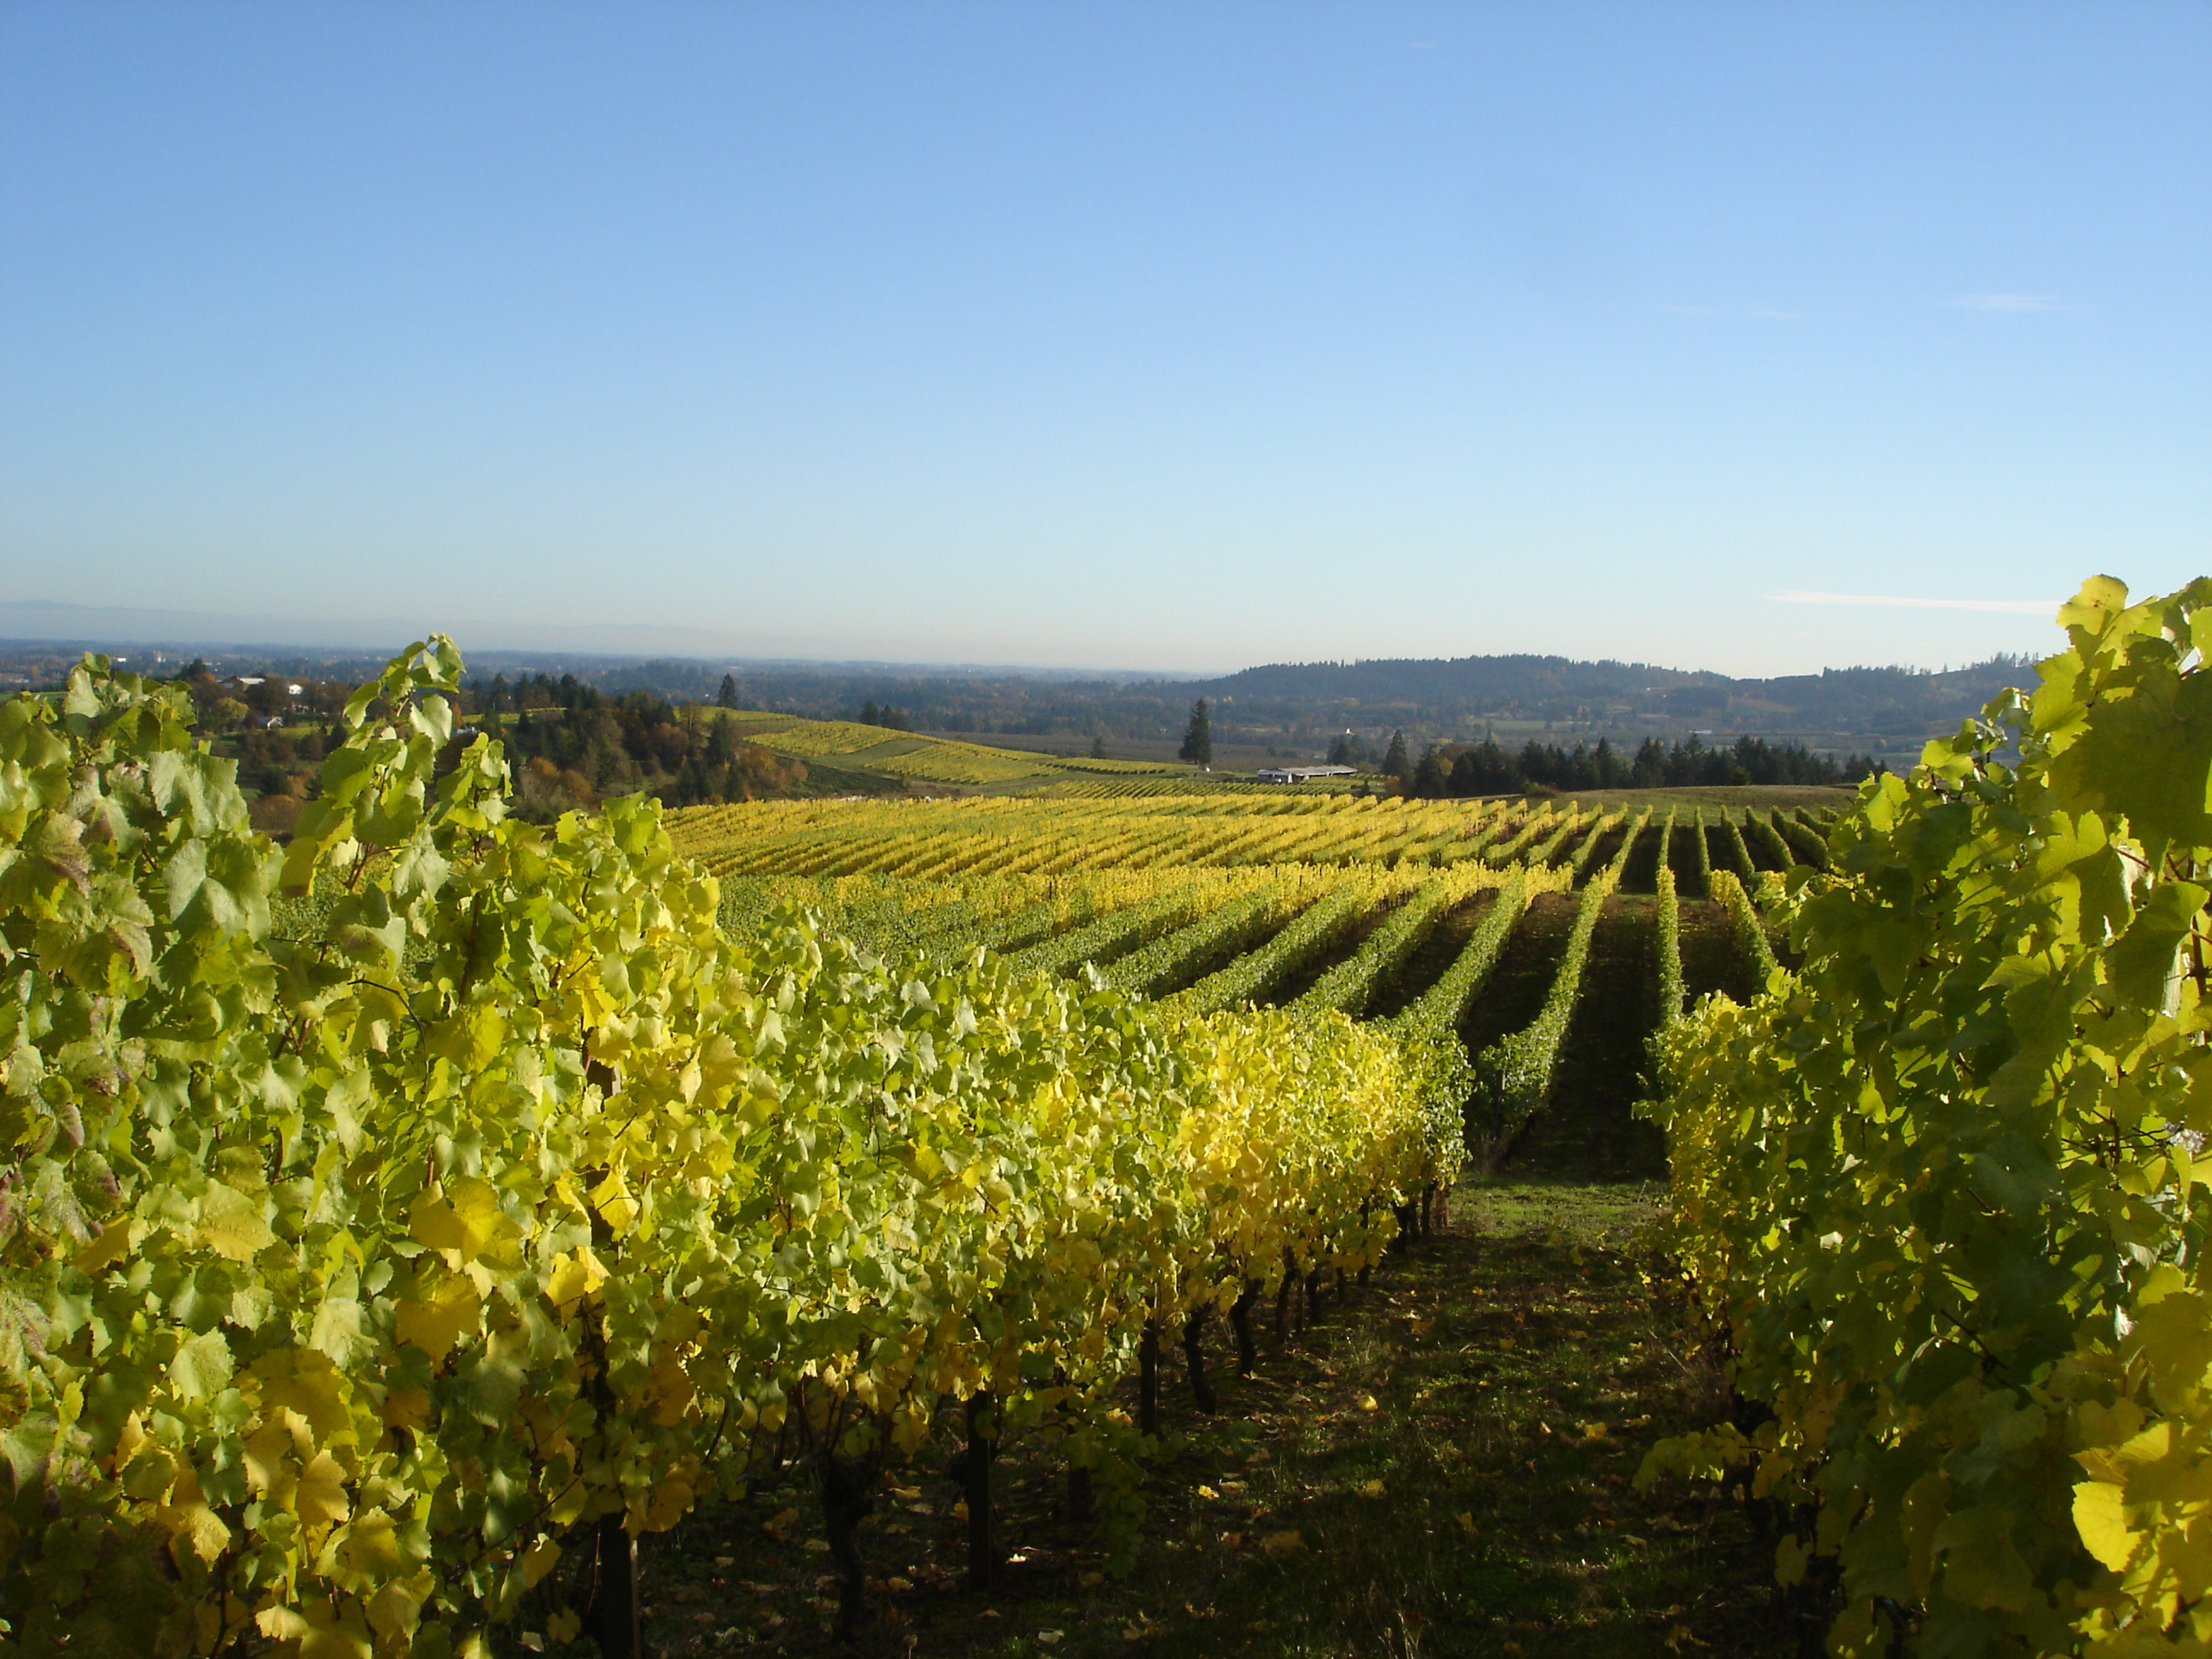 delemare vineyard Farms for sale - agriculture real estate, farm, land and ranches for sale in the united states.